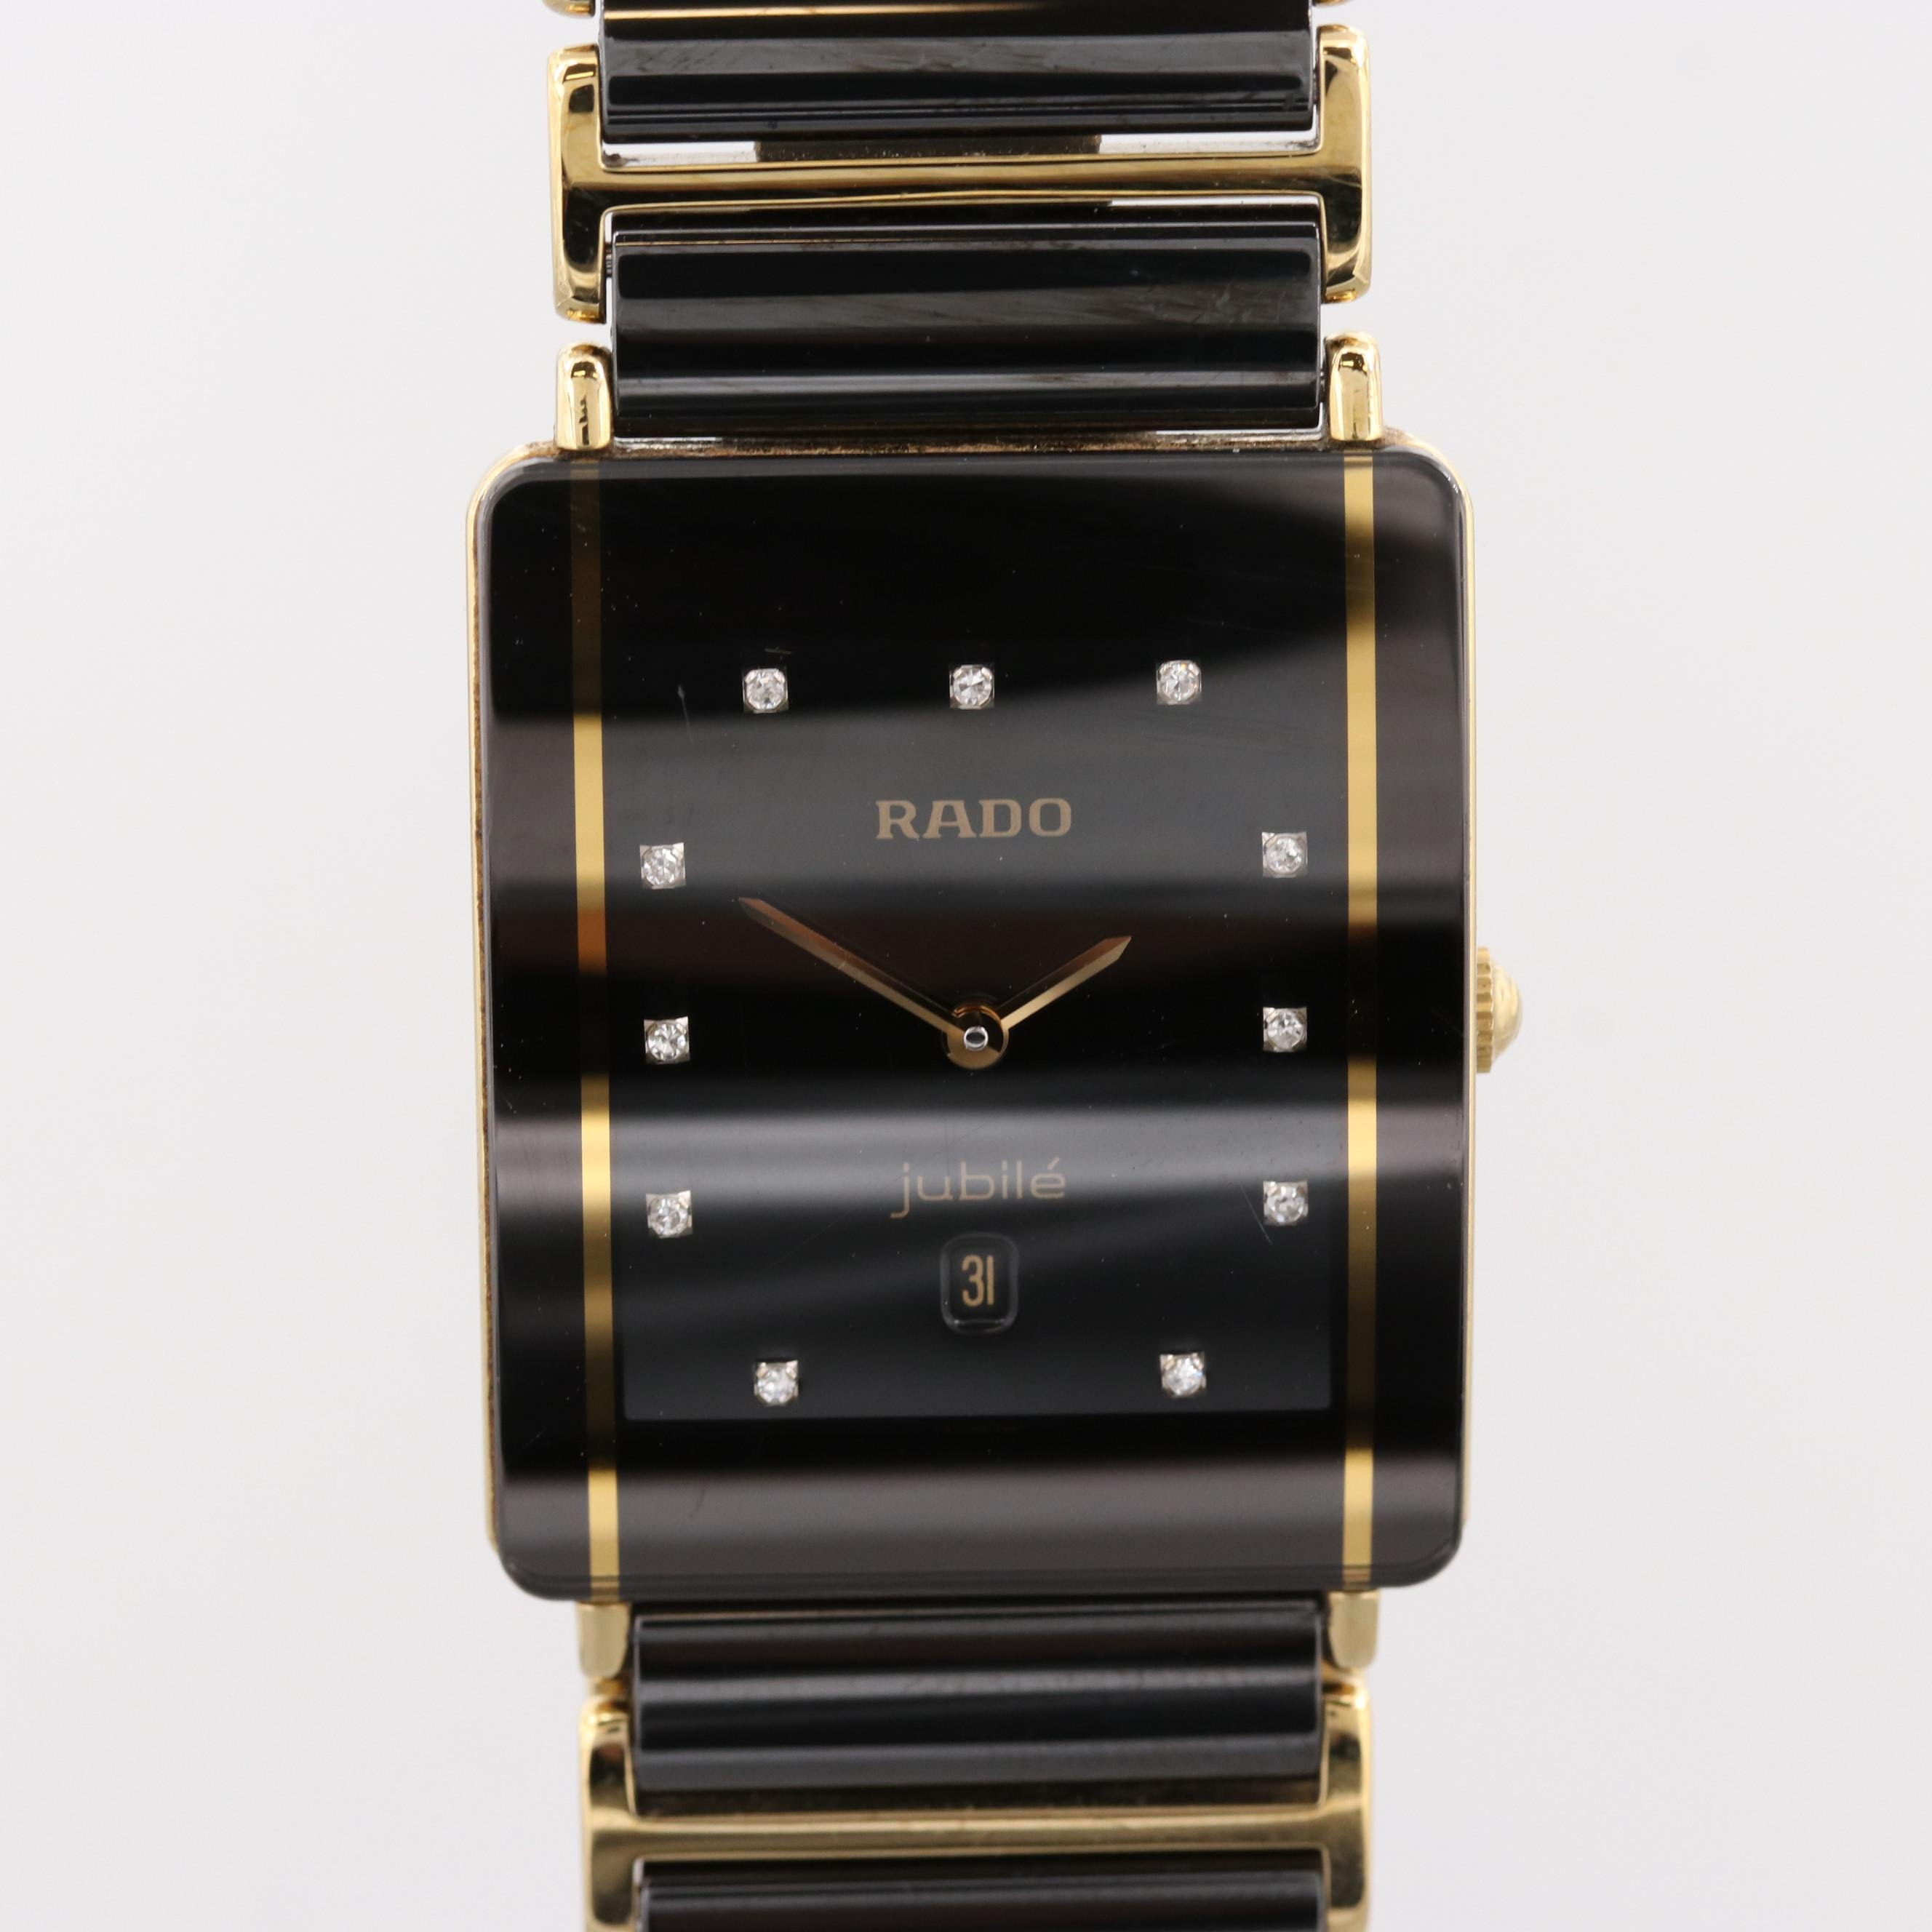 Rado Jubilé Black Titanium and Ceramic Wristwatch With Diamond Dial and Date